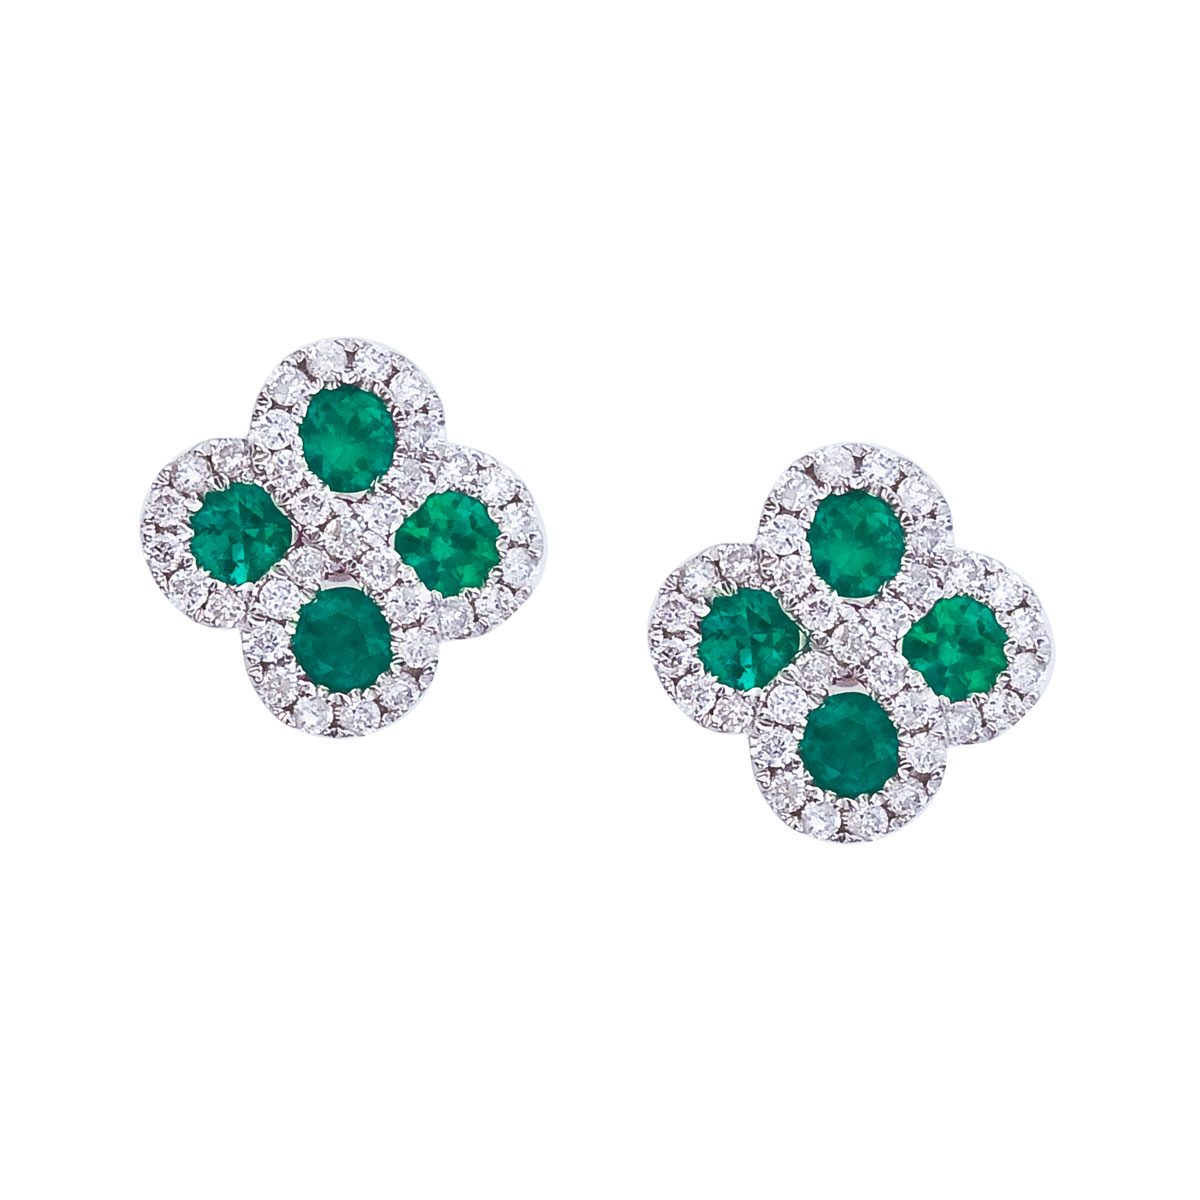 Beautiful clover shaped earrings with 2.7 mm emeralds surrounded by gleaming diamonds.